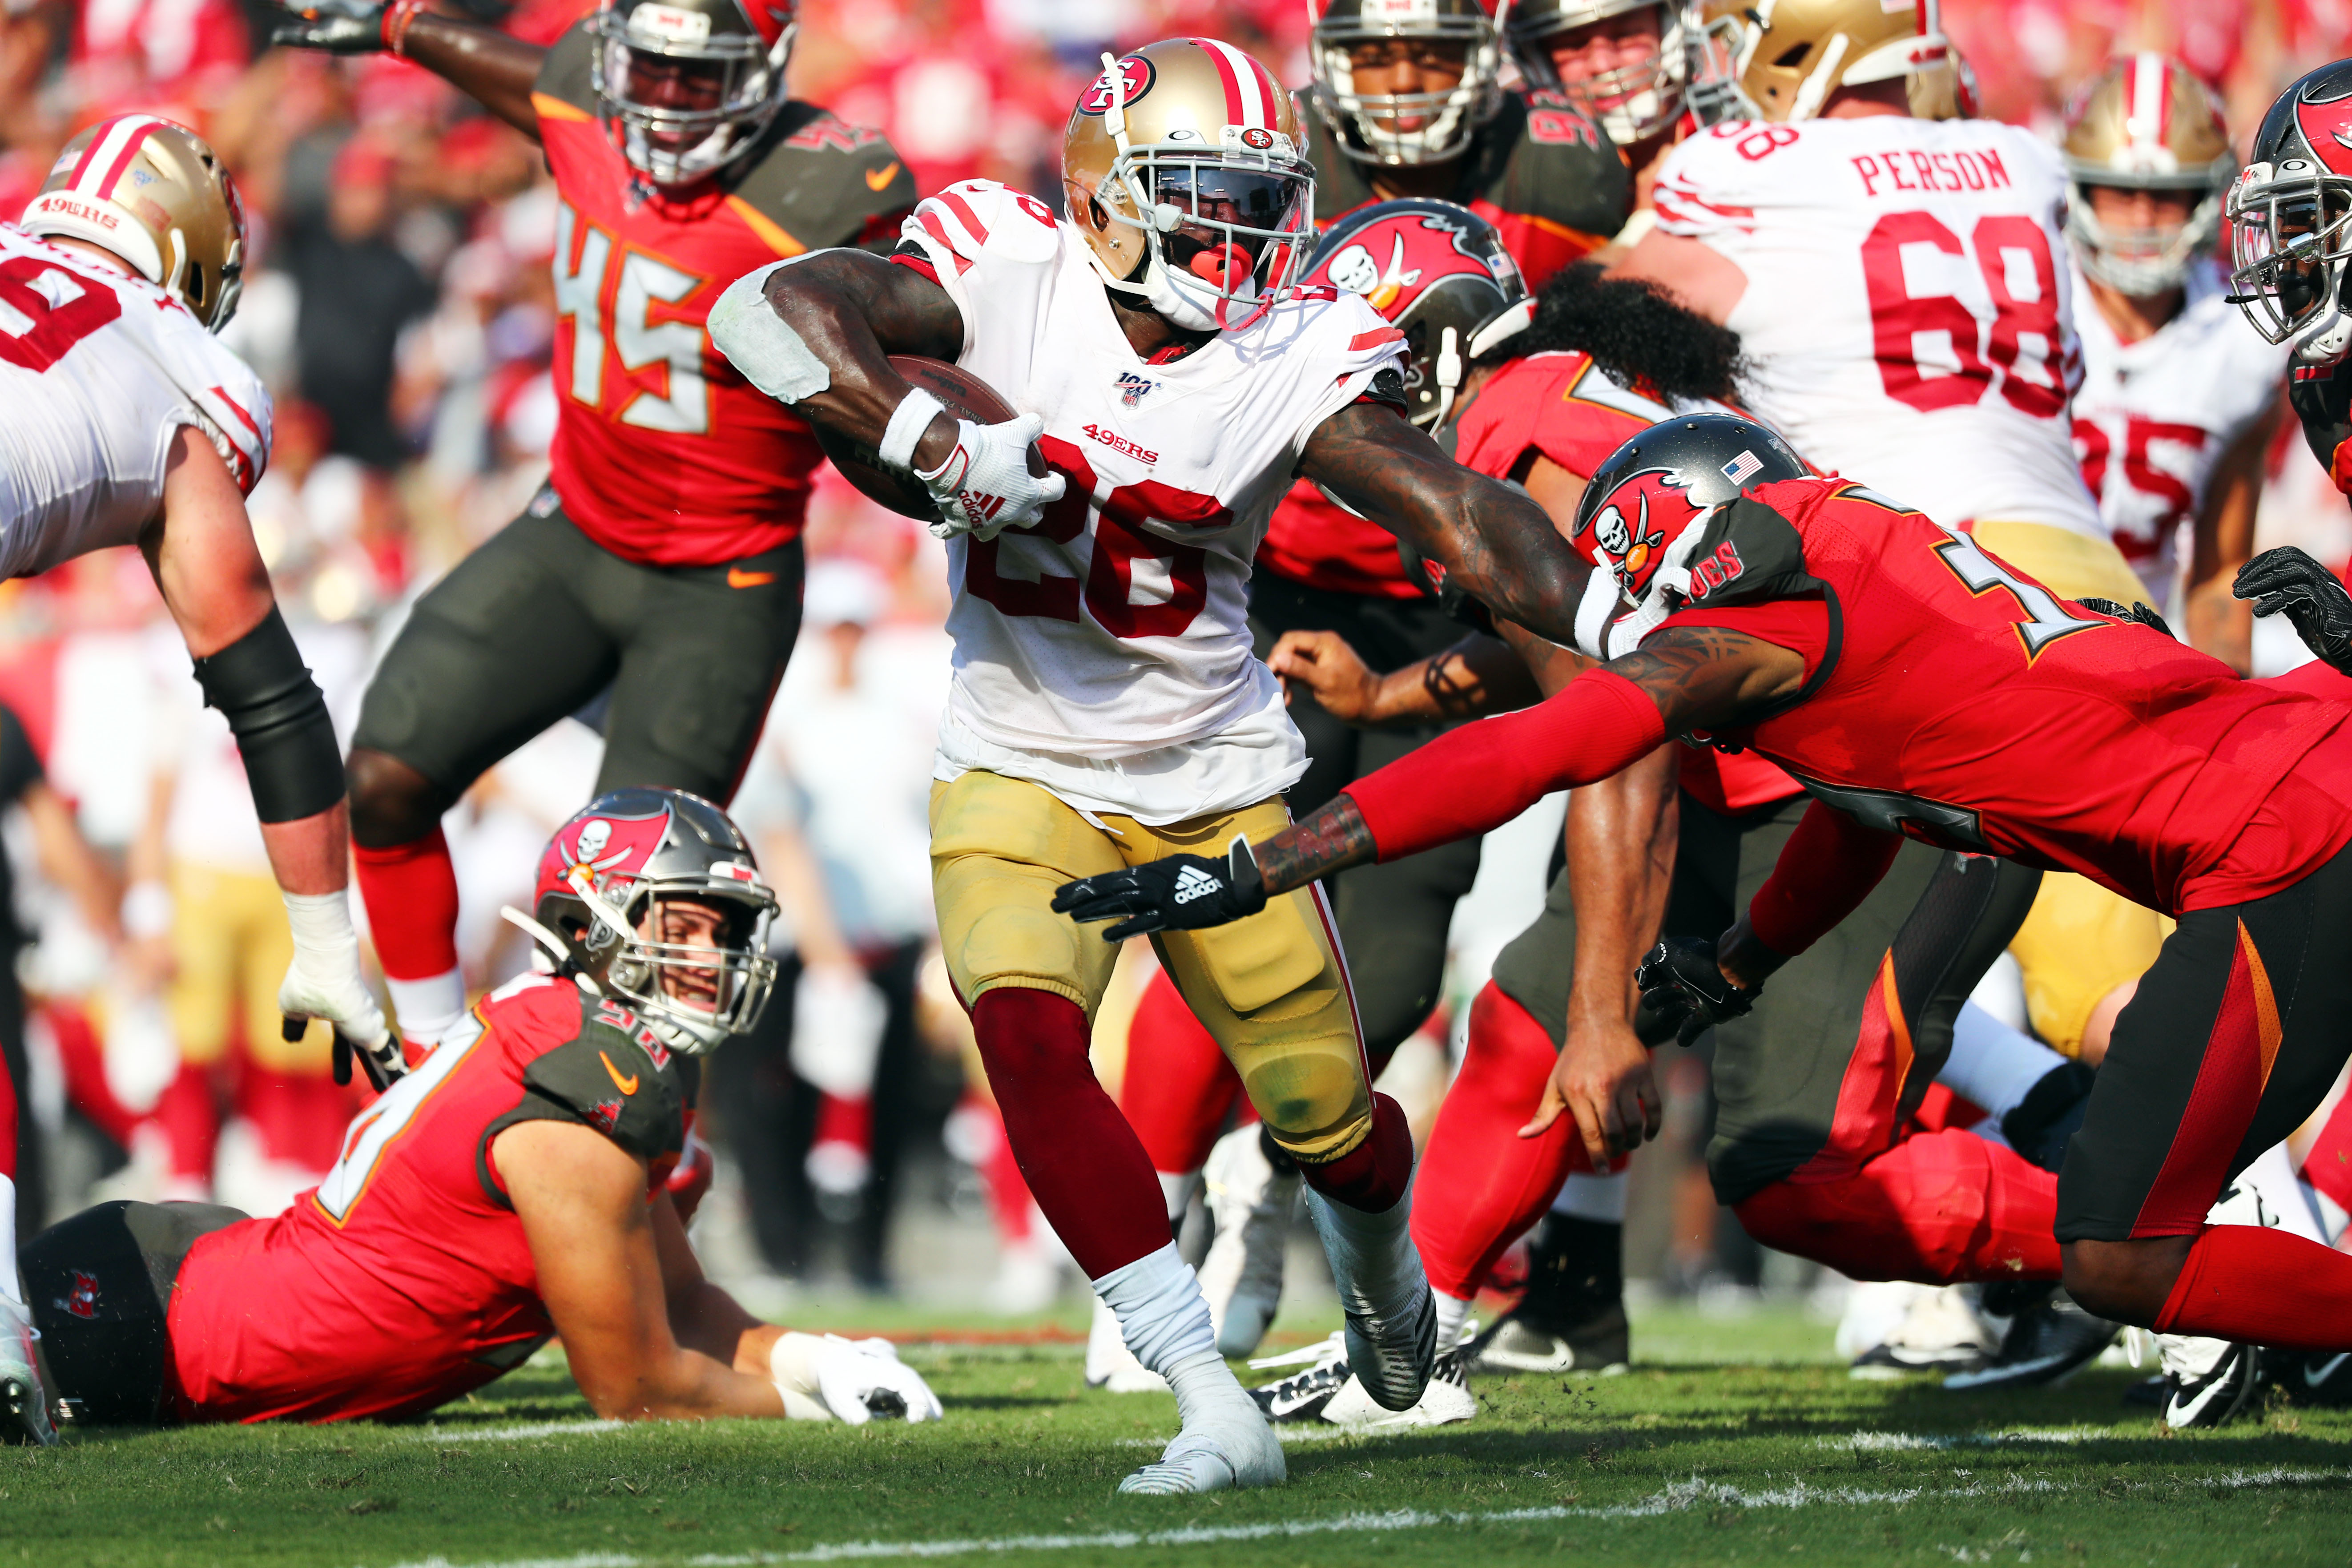 49ers fantasy football: What is Tevin Coleman's value when he returns?